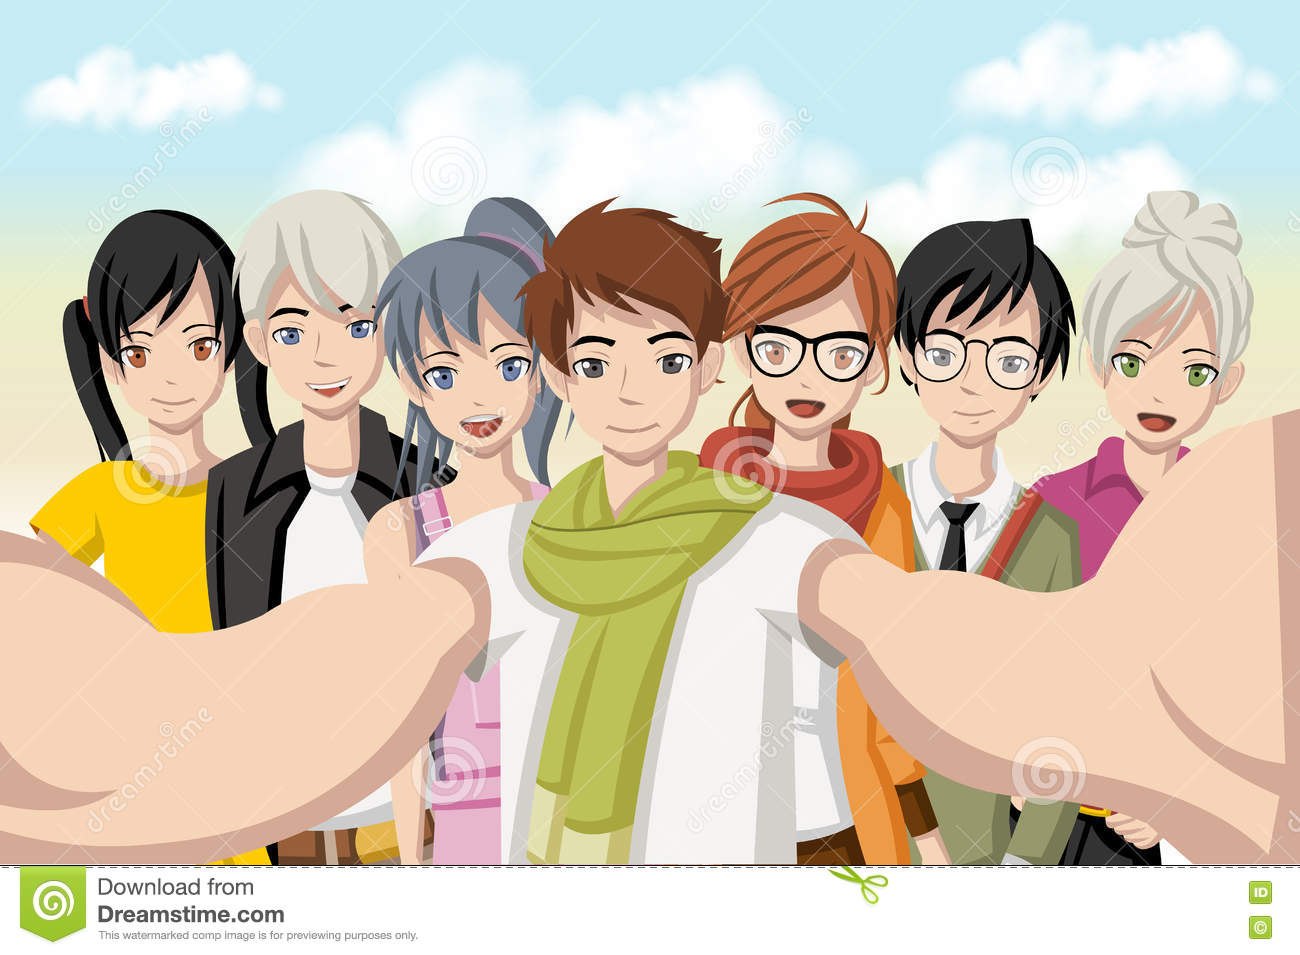 Group of cartoon young people taking telfie photo picture of manga anime teenagers n